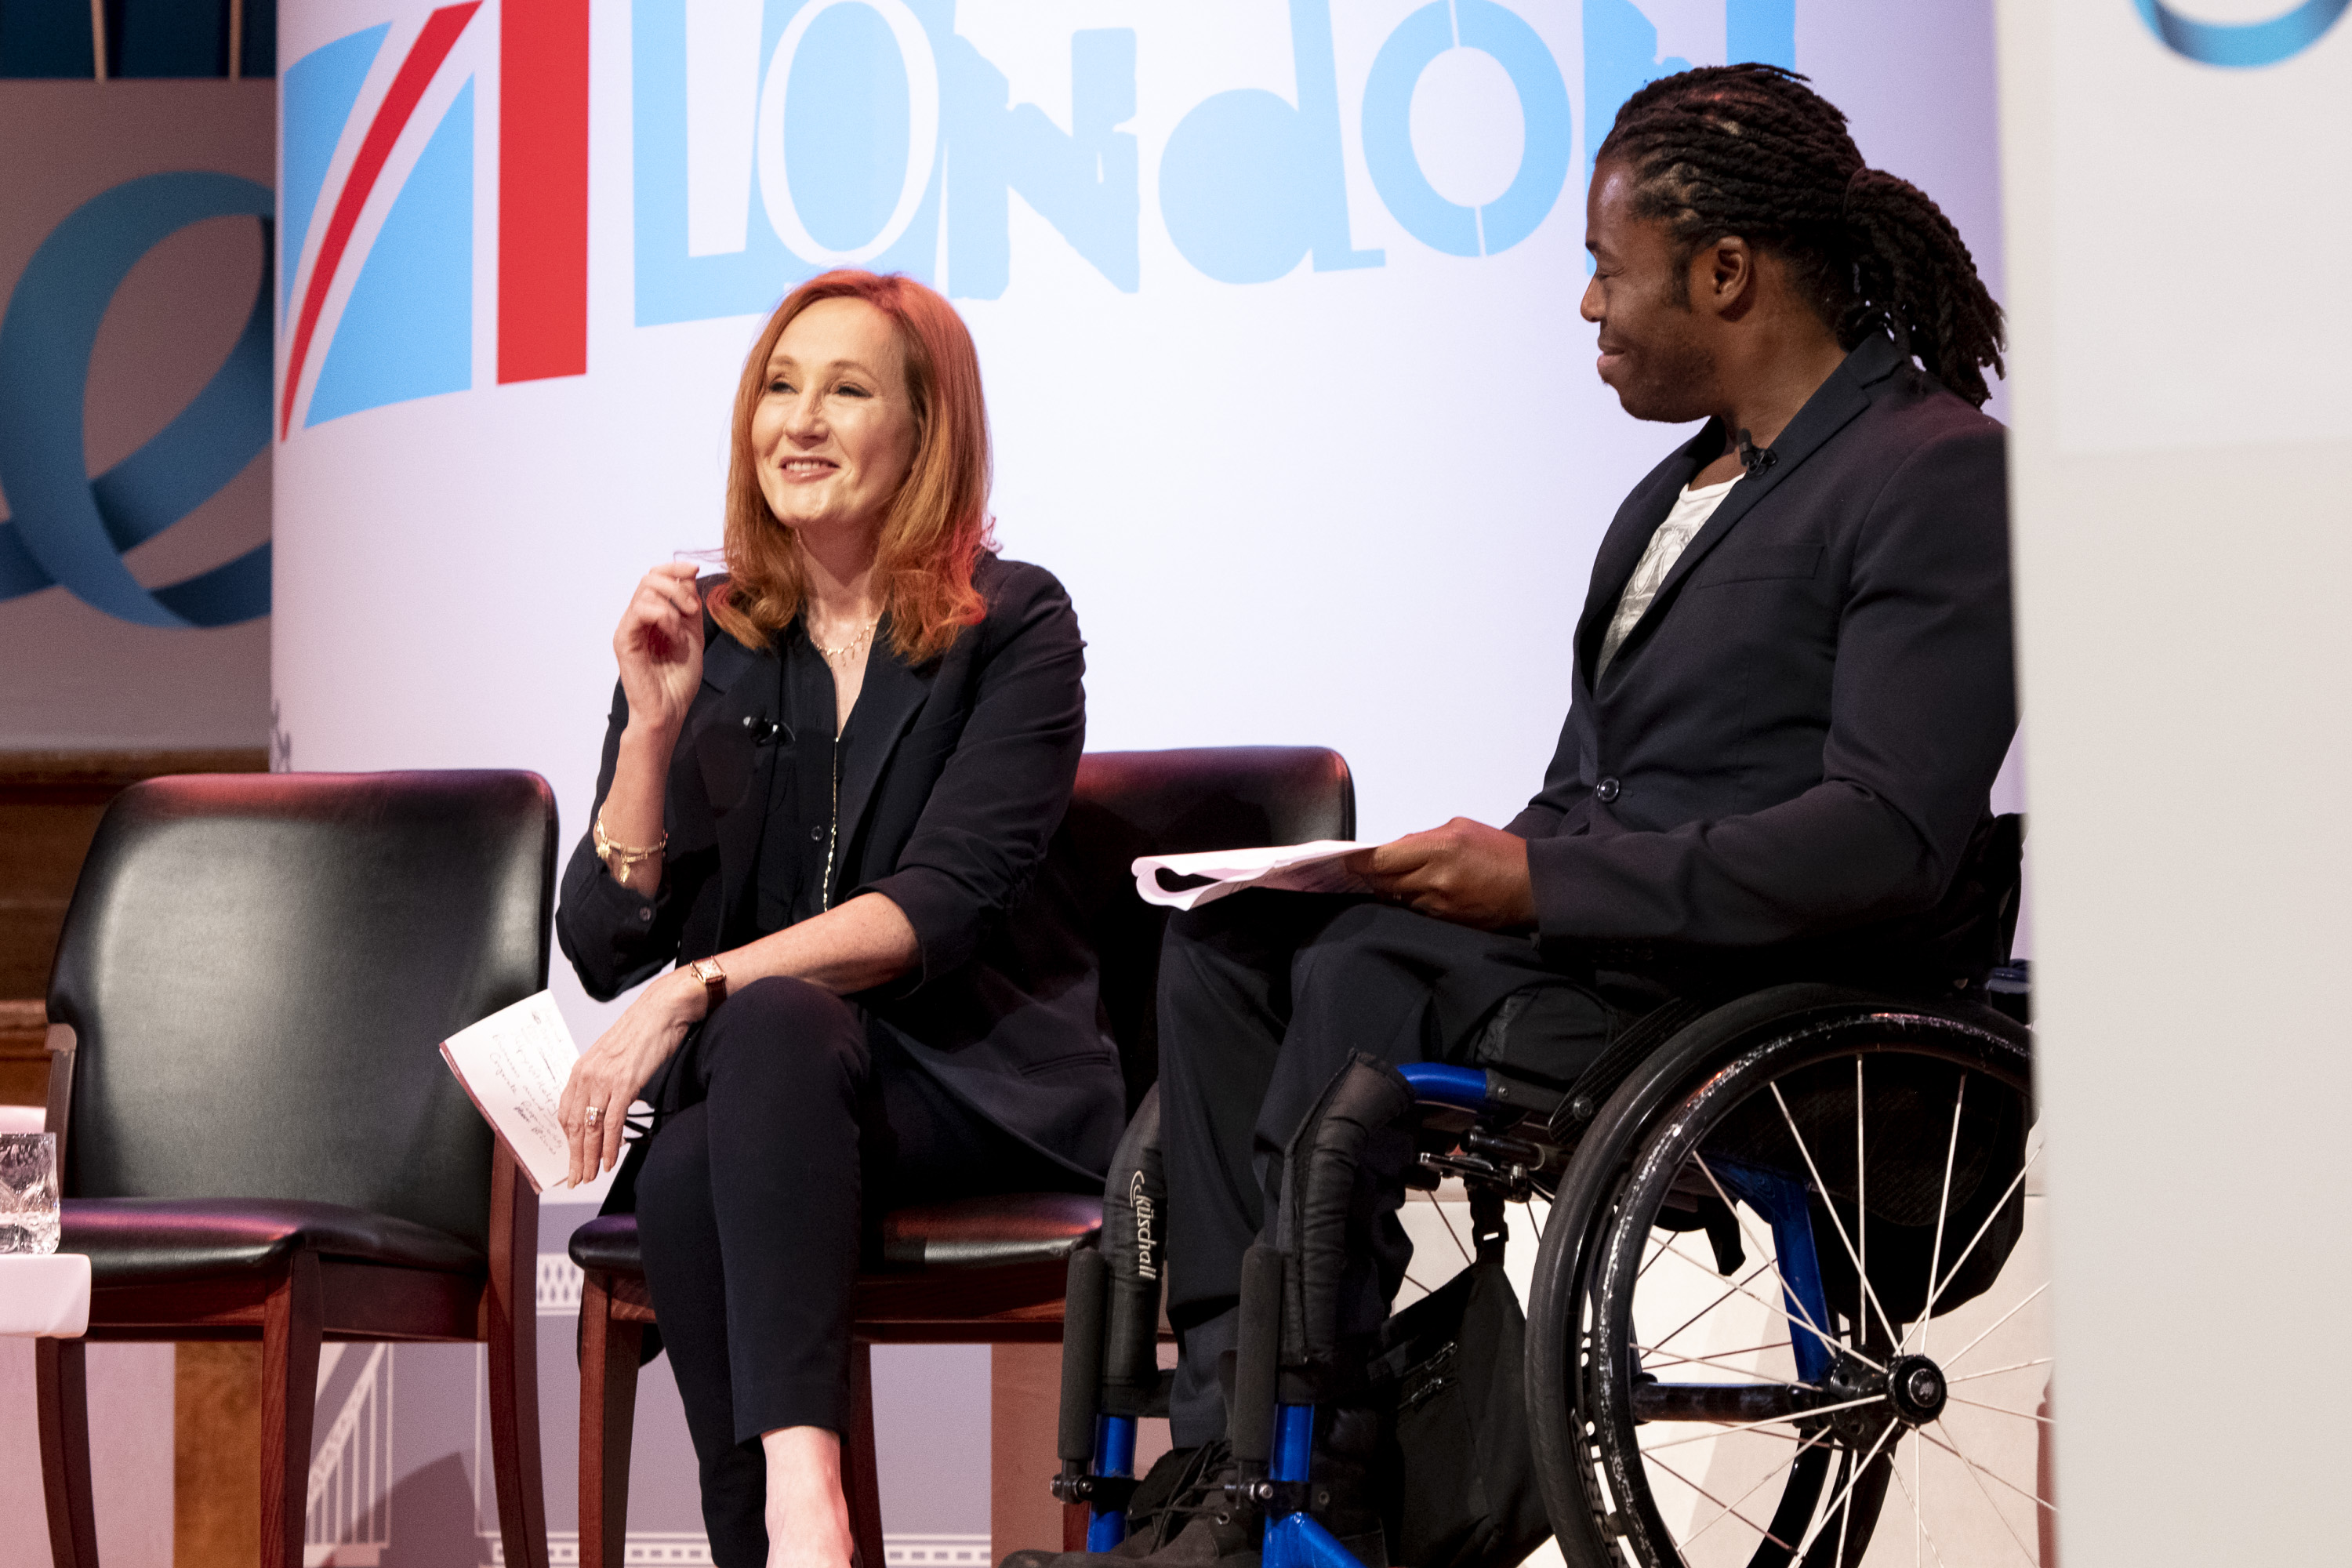 The author J.K. Rowling alongside U.K. paralympian Ade Adepitan at the One Young World global forum in London on Oct. 24